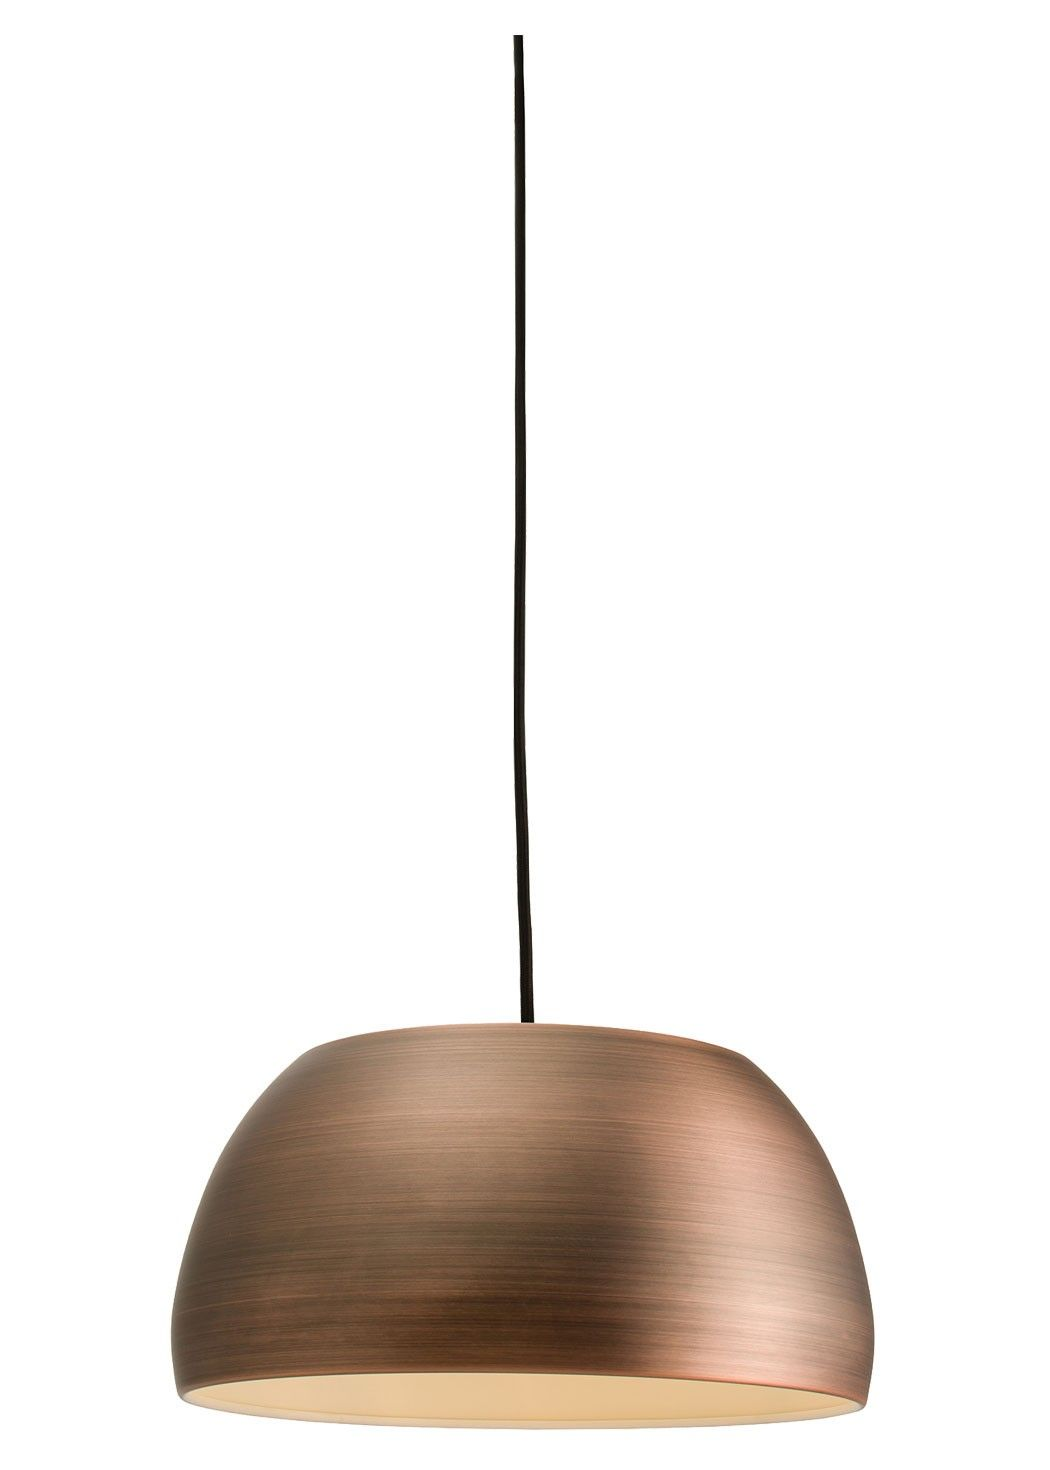 Bronze Ceiling Lights: Top 25 ideas about kitchen lighting on Pinterest | Copper, Origami paper  and Gaucho,Lighting